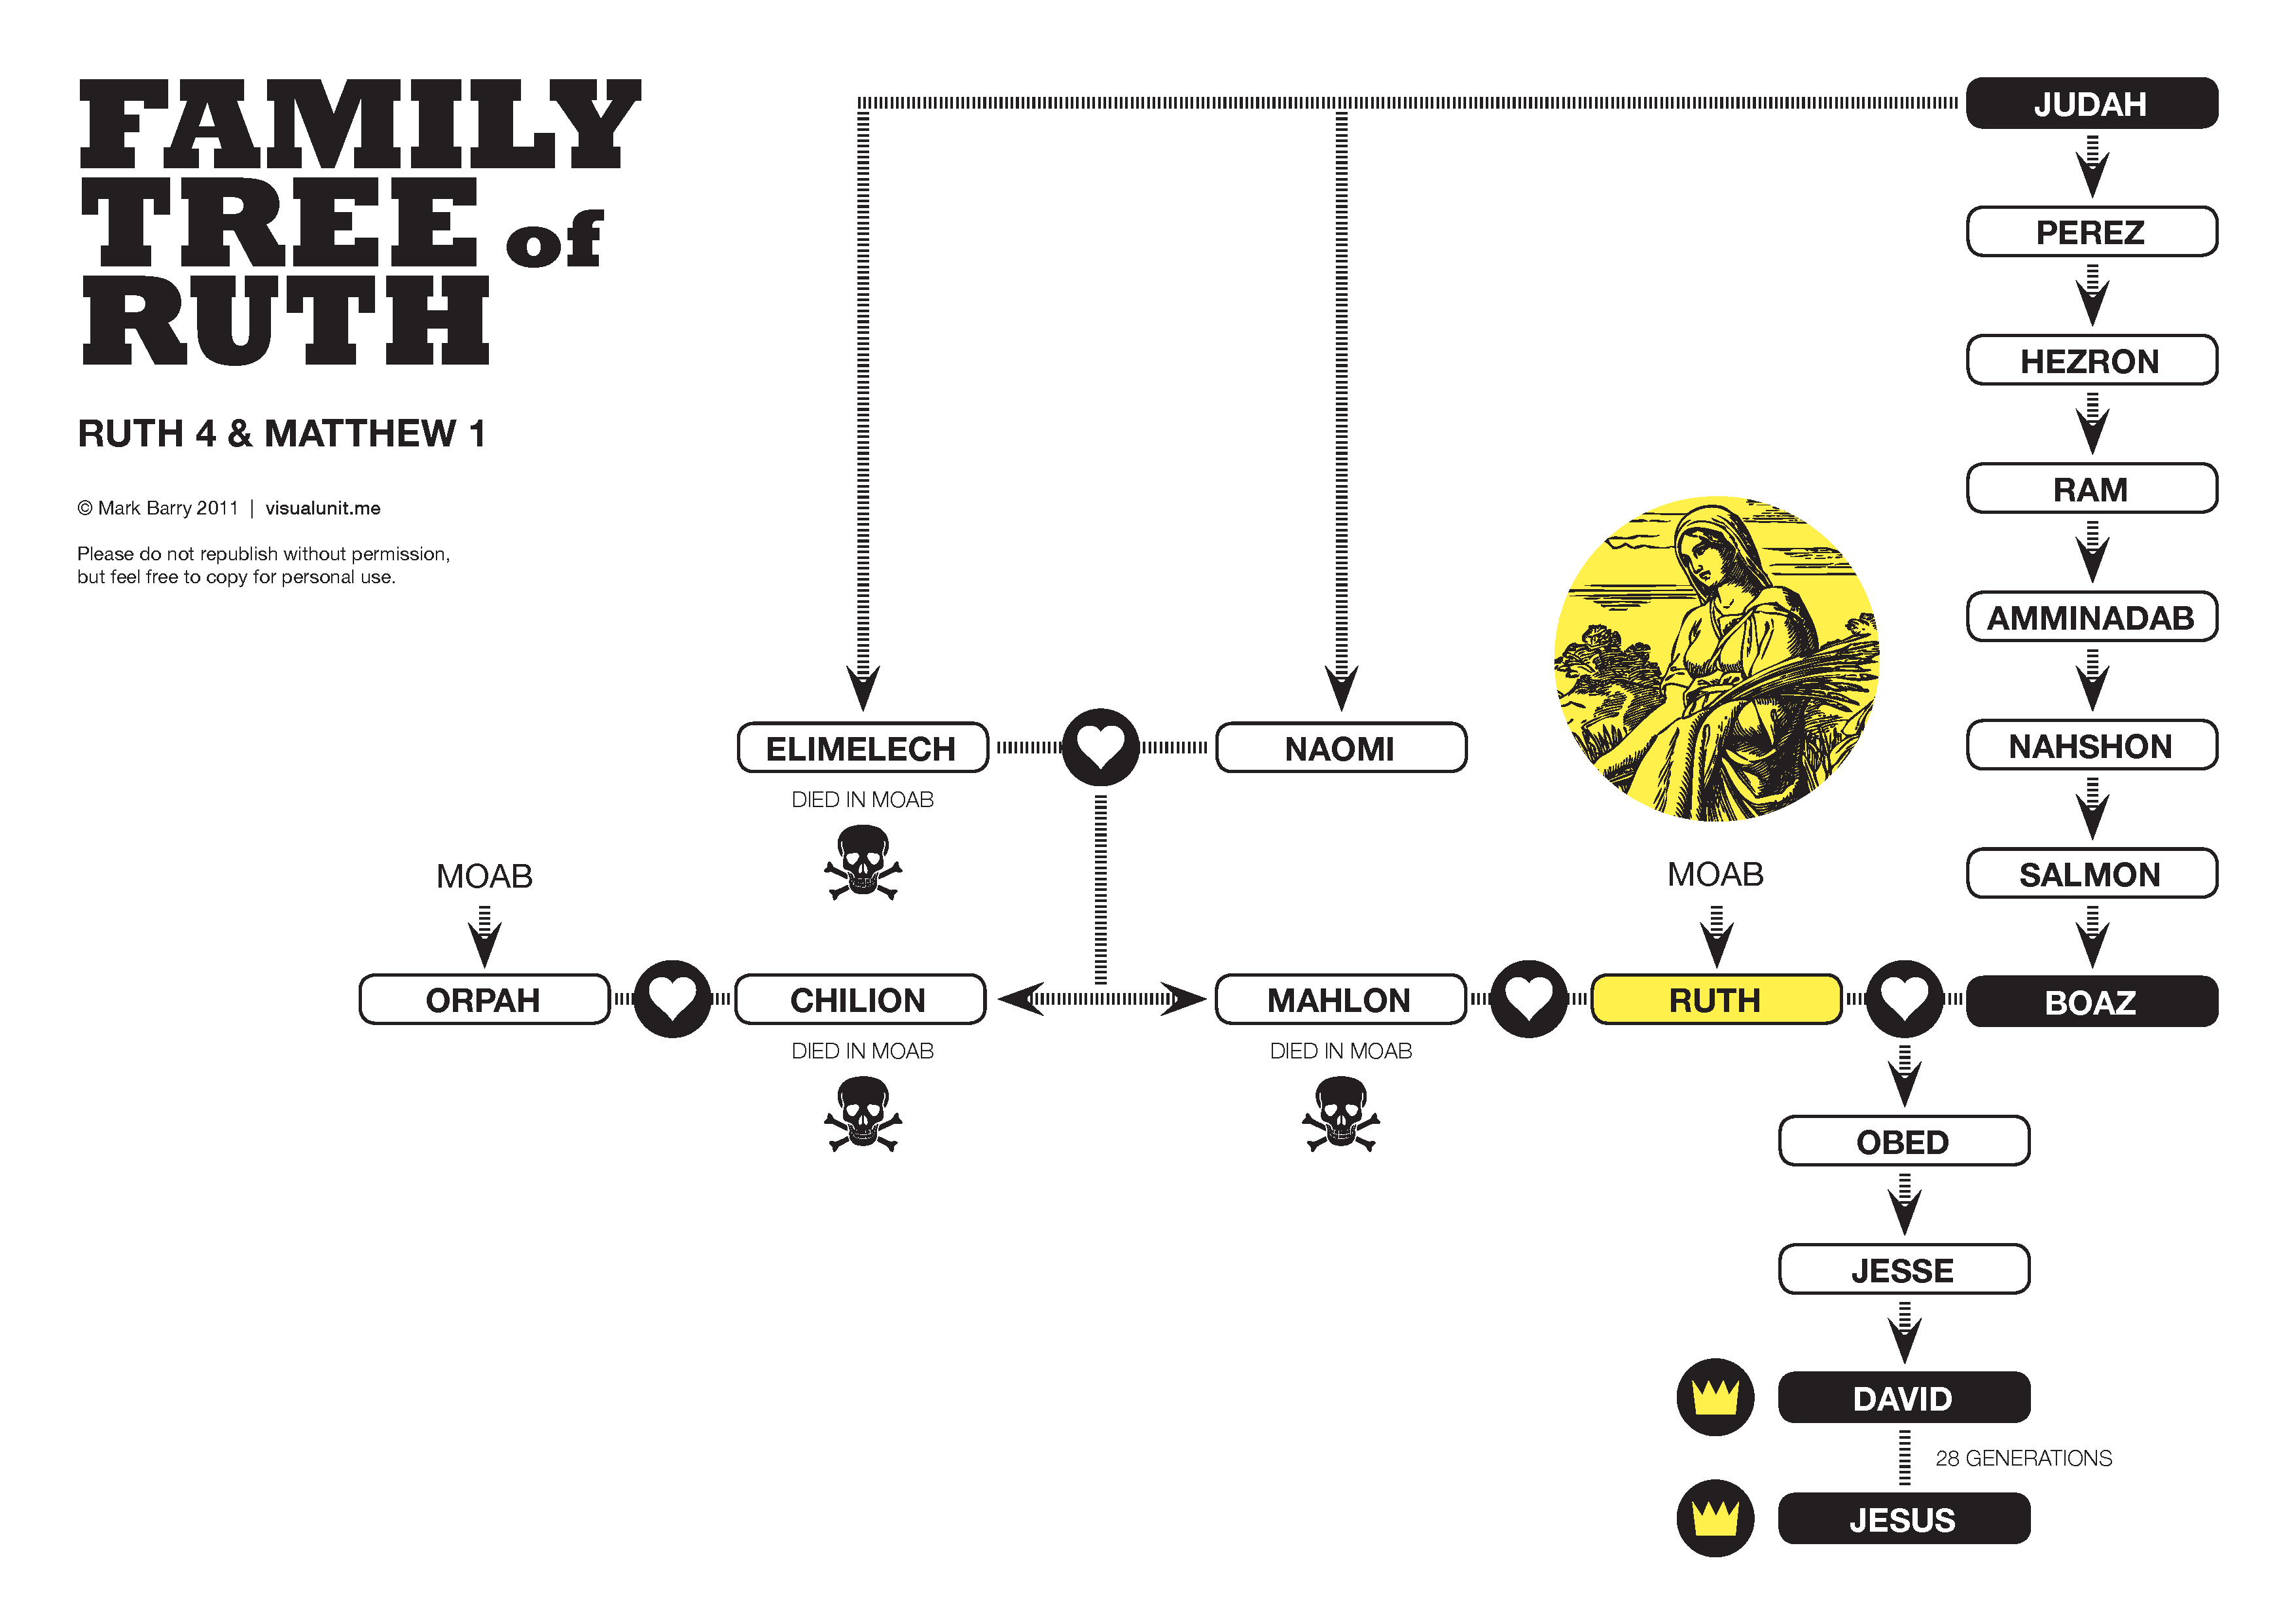 The Family Tree Of Ruth From Ruth 4 And Matthew 1